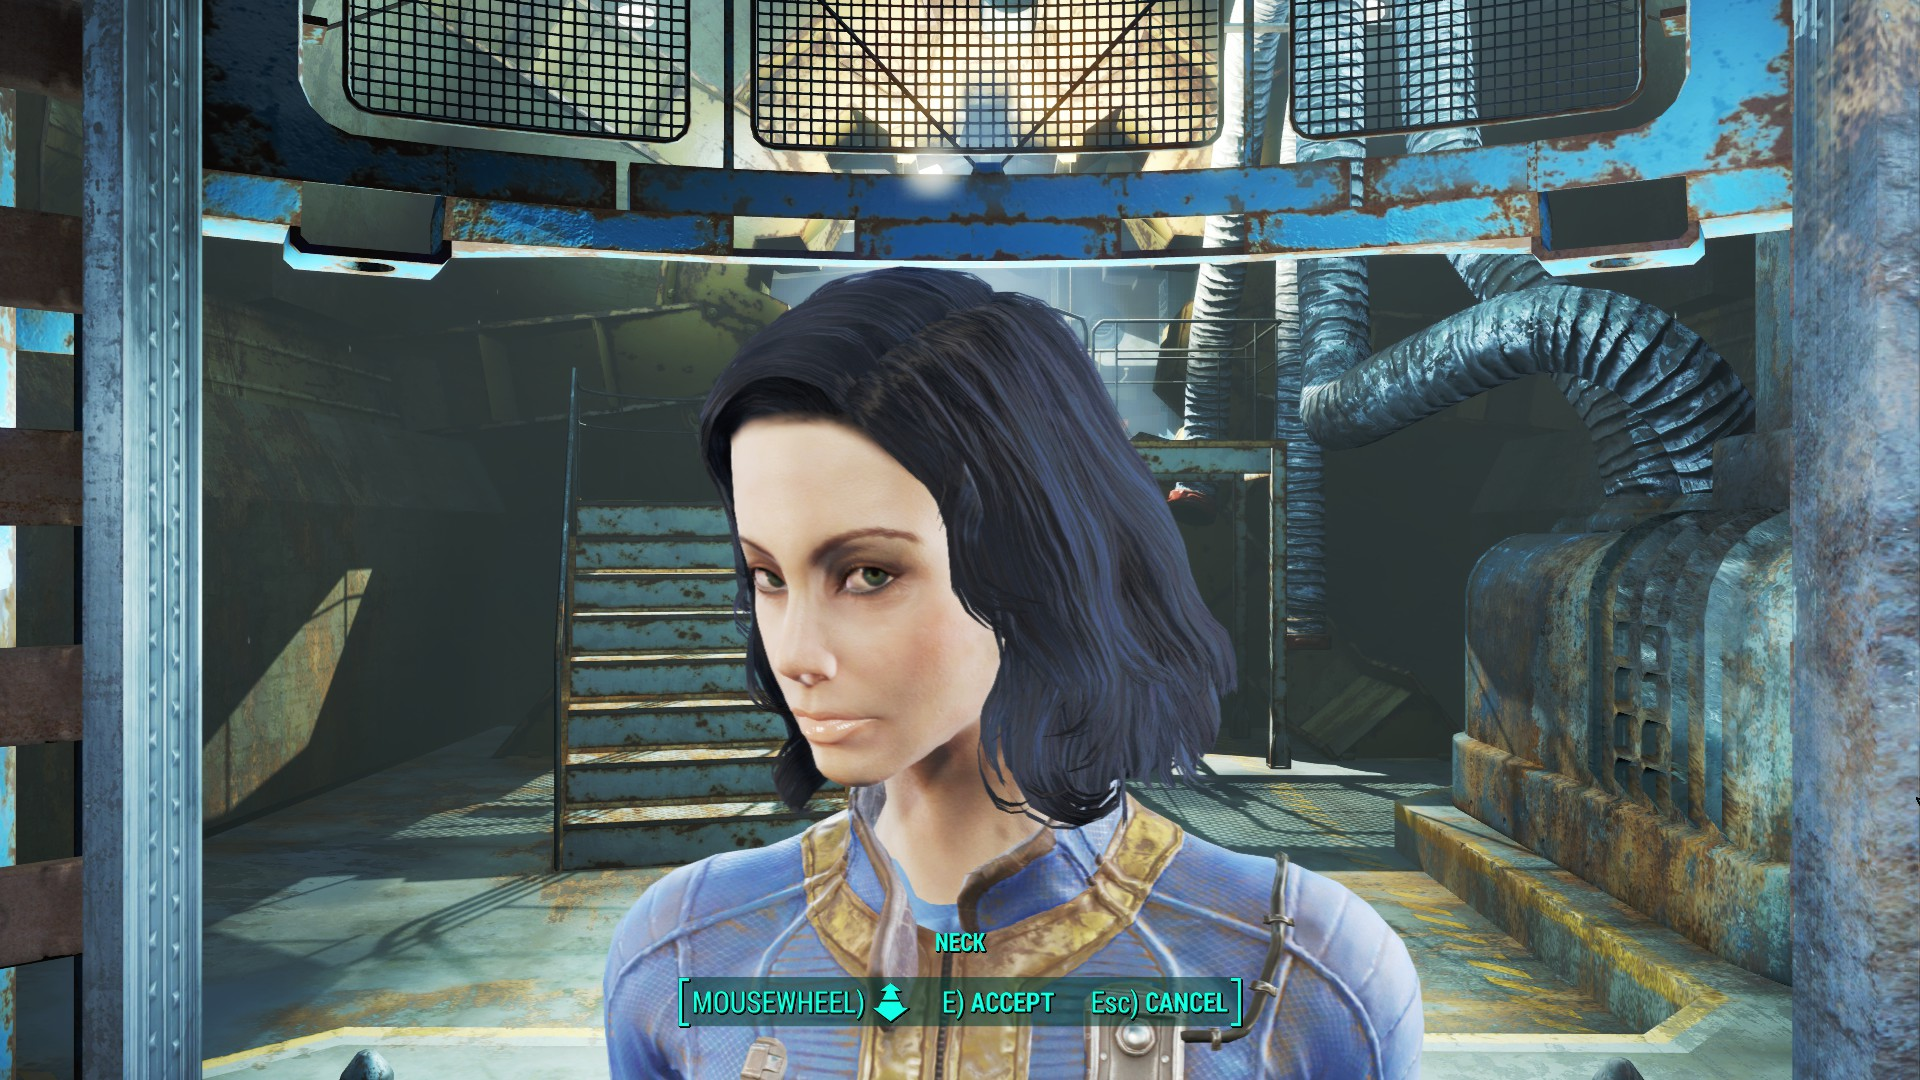 Character Save  Claire by Robert  Fallout 4  FO4 mods